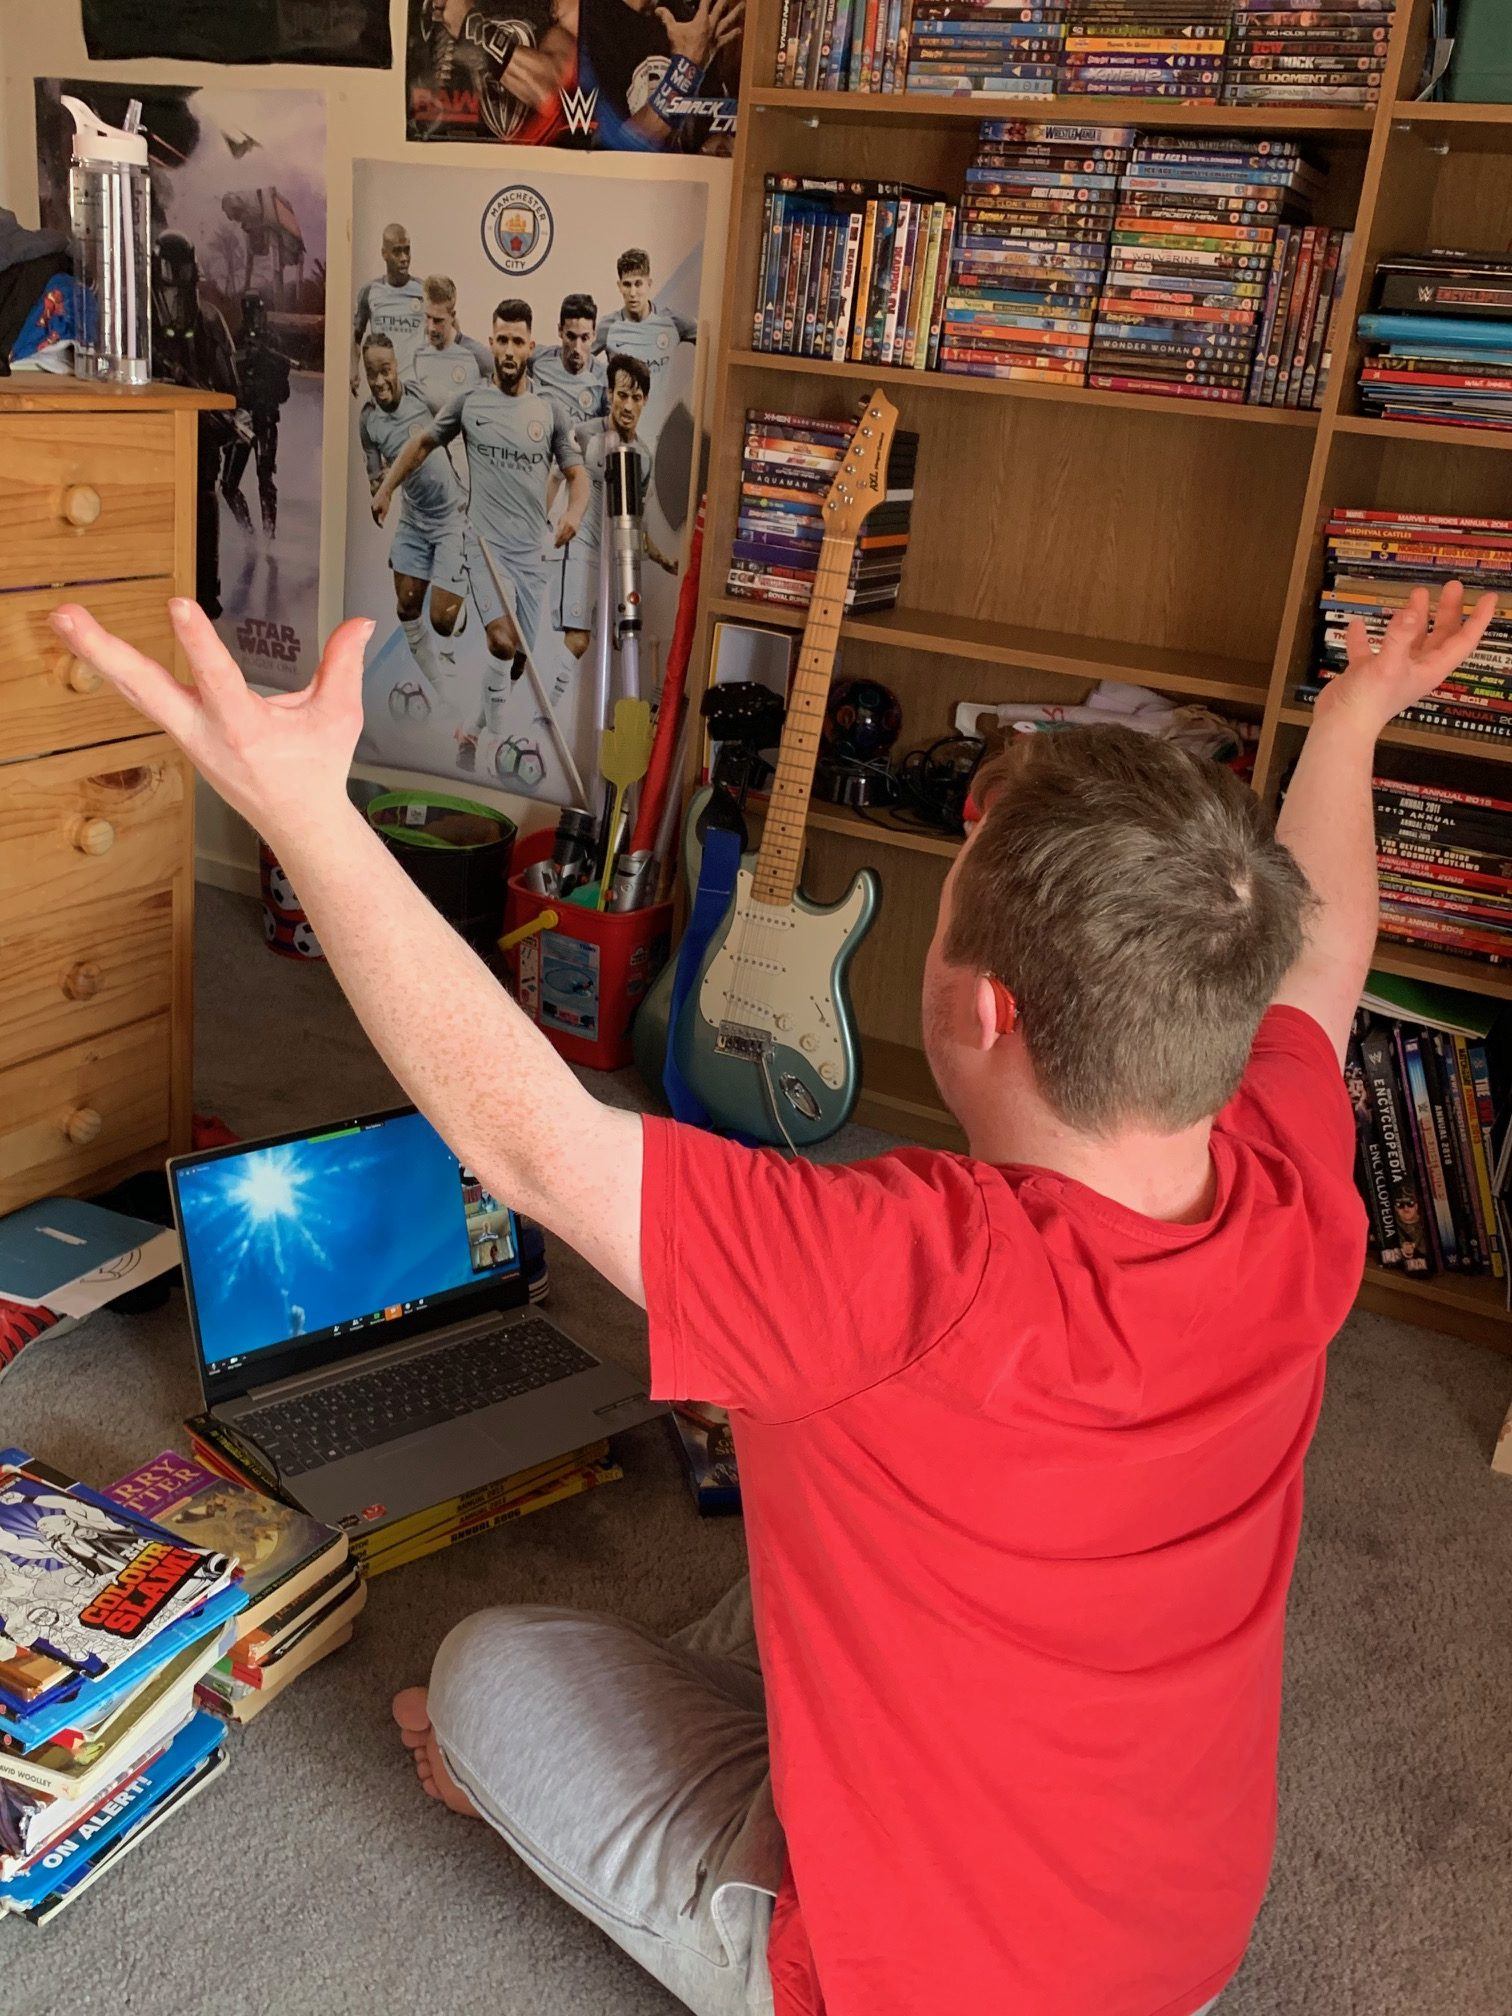 James looking at a laptop with his hands in the air